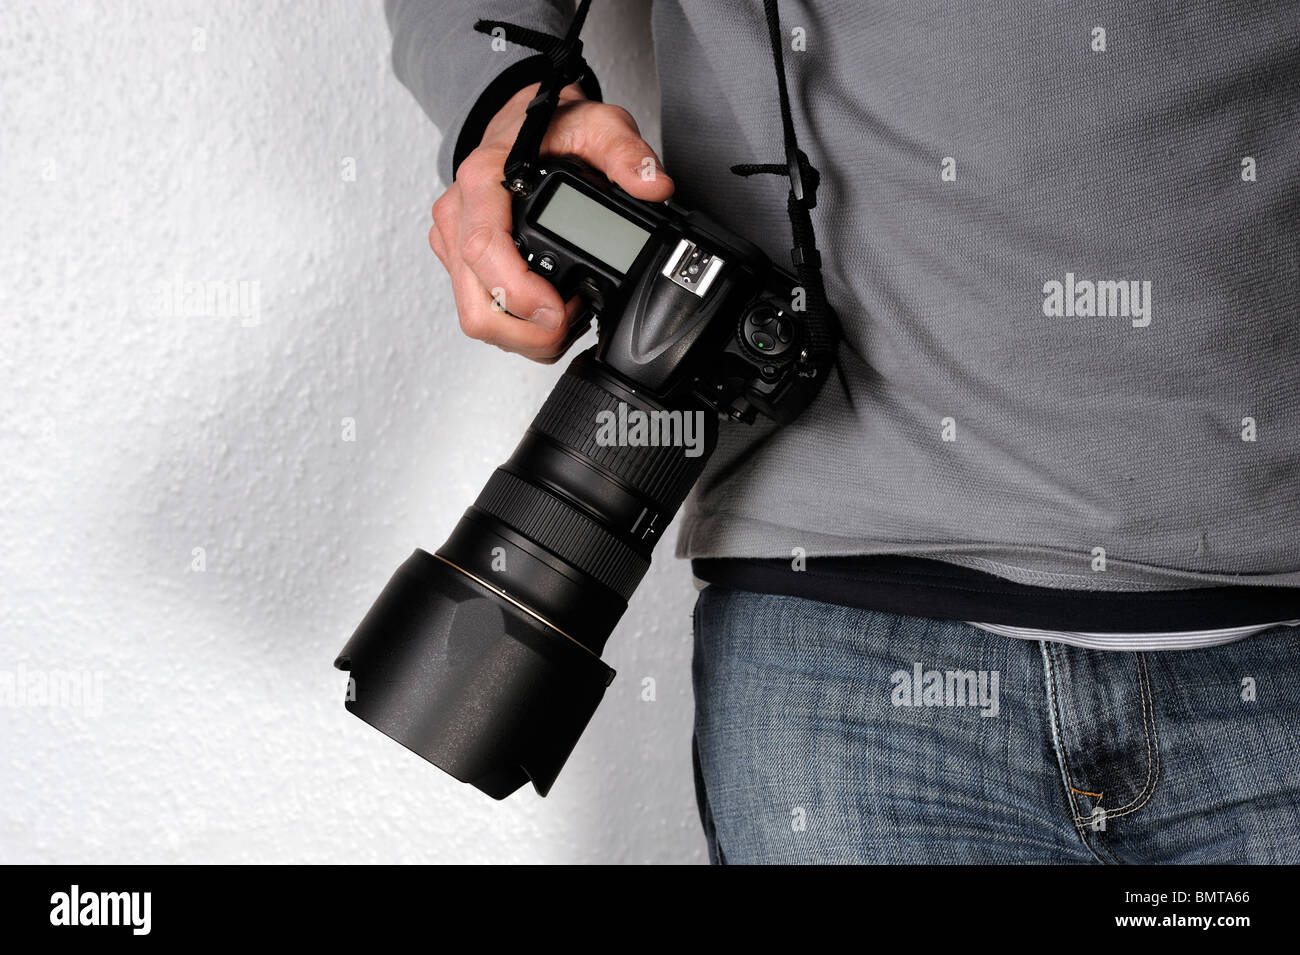 Man holding a camera - Stock Image